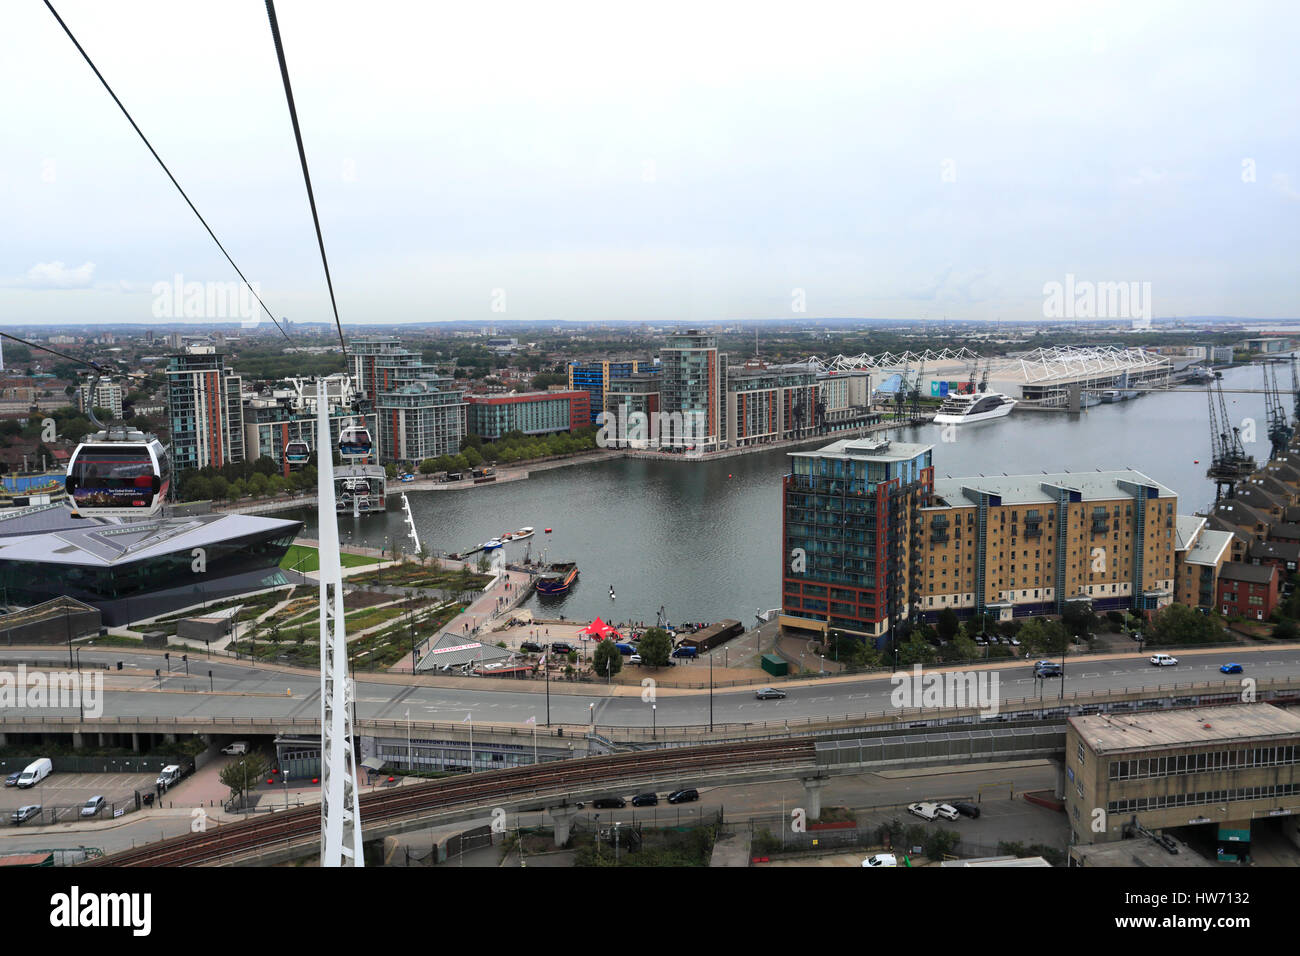 View from the Emirates Air Line (cable car), Royal Docks Terminal, London, England Stock Photo